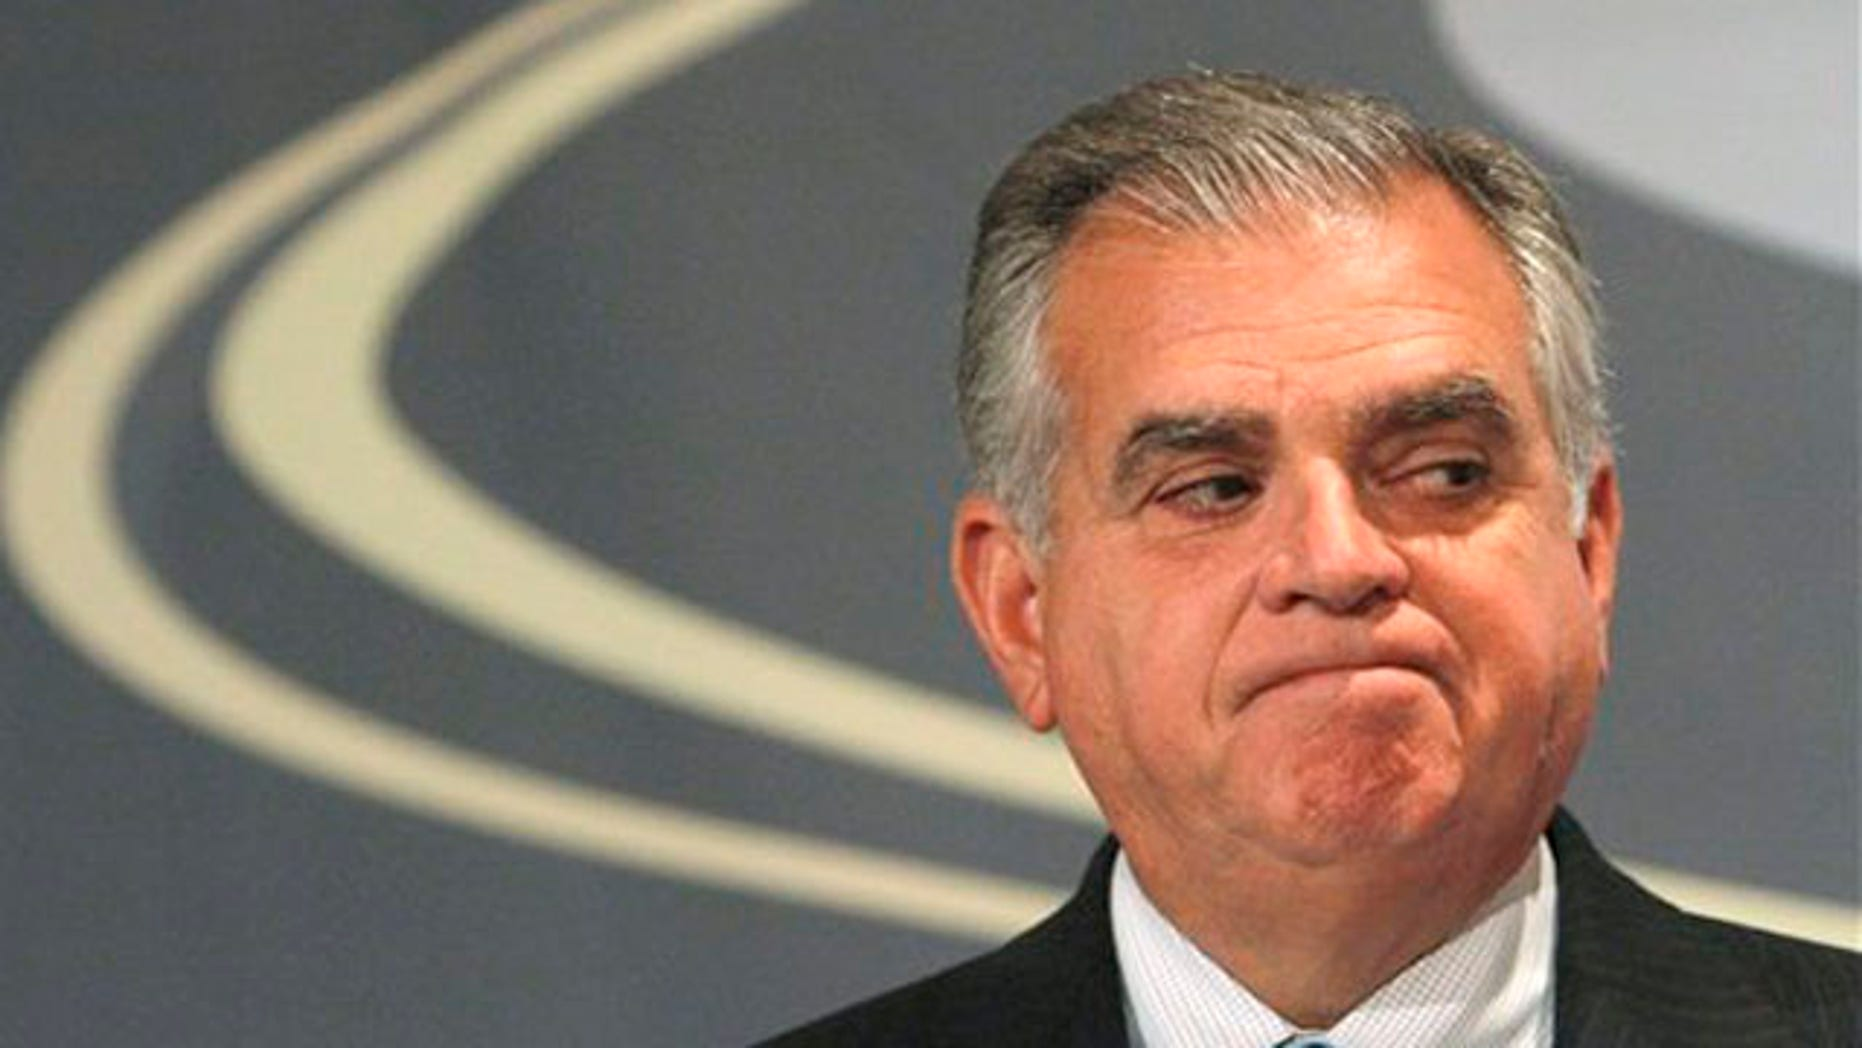 FILE: Transportation Secretary Ray LaHood listens as families of victims of distracted driving accidents speak at the Distracted Driving Summit in Washington Sept. 21.